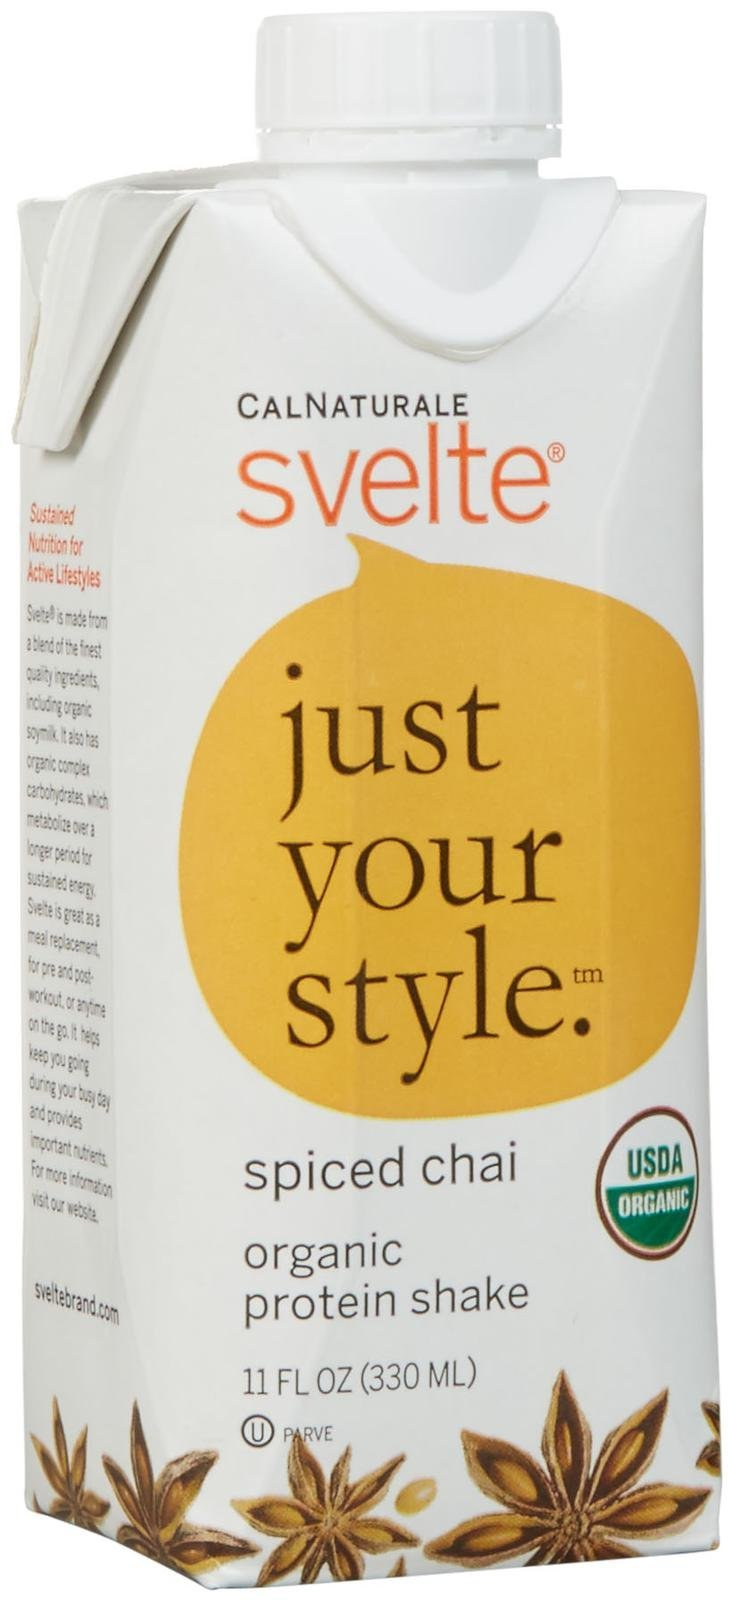 CalNaturale svelte Organic Protein Shake Drink - Spiced Chai - 11 oz - 8 Pack